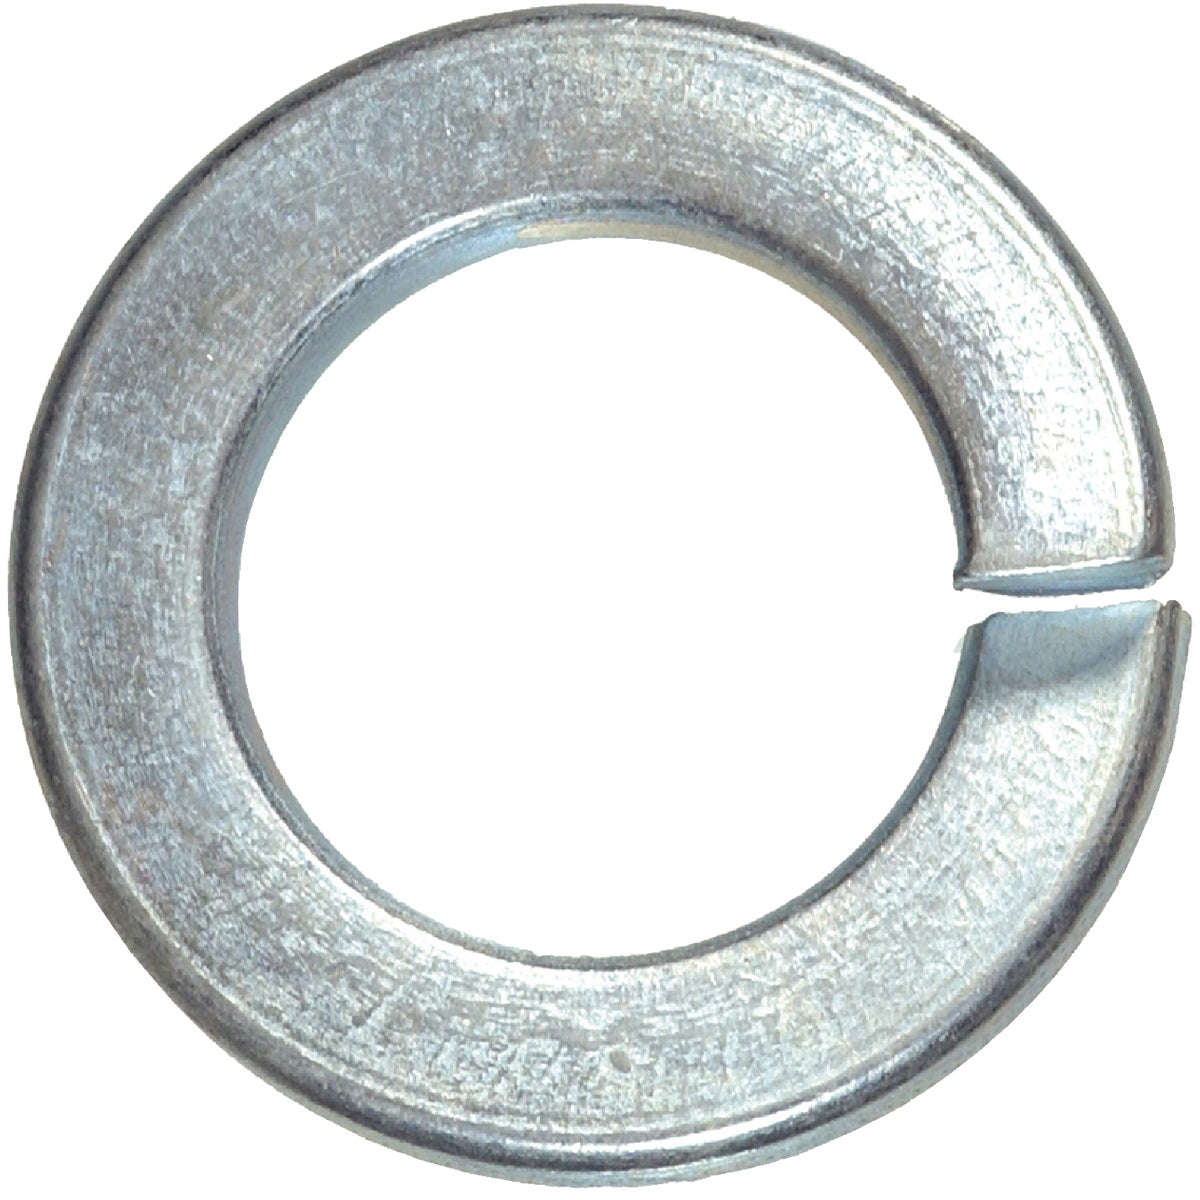 "100PC 5/16"" LOCK WASHER - 300021 by Hillman Fastener"